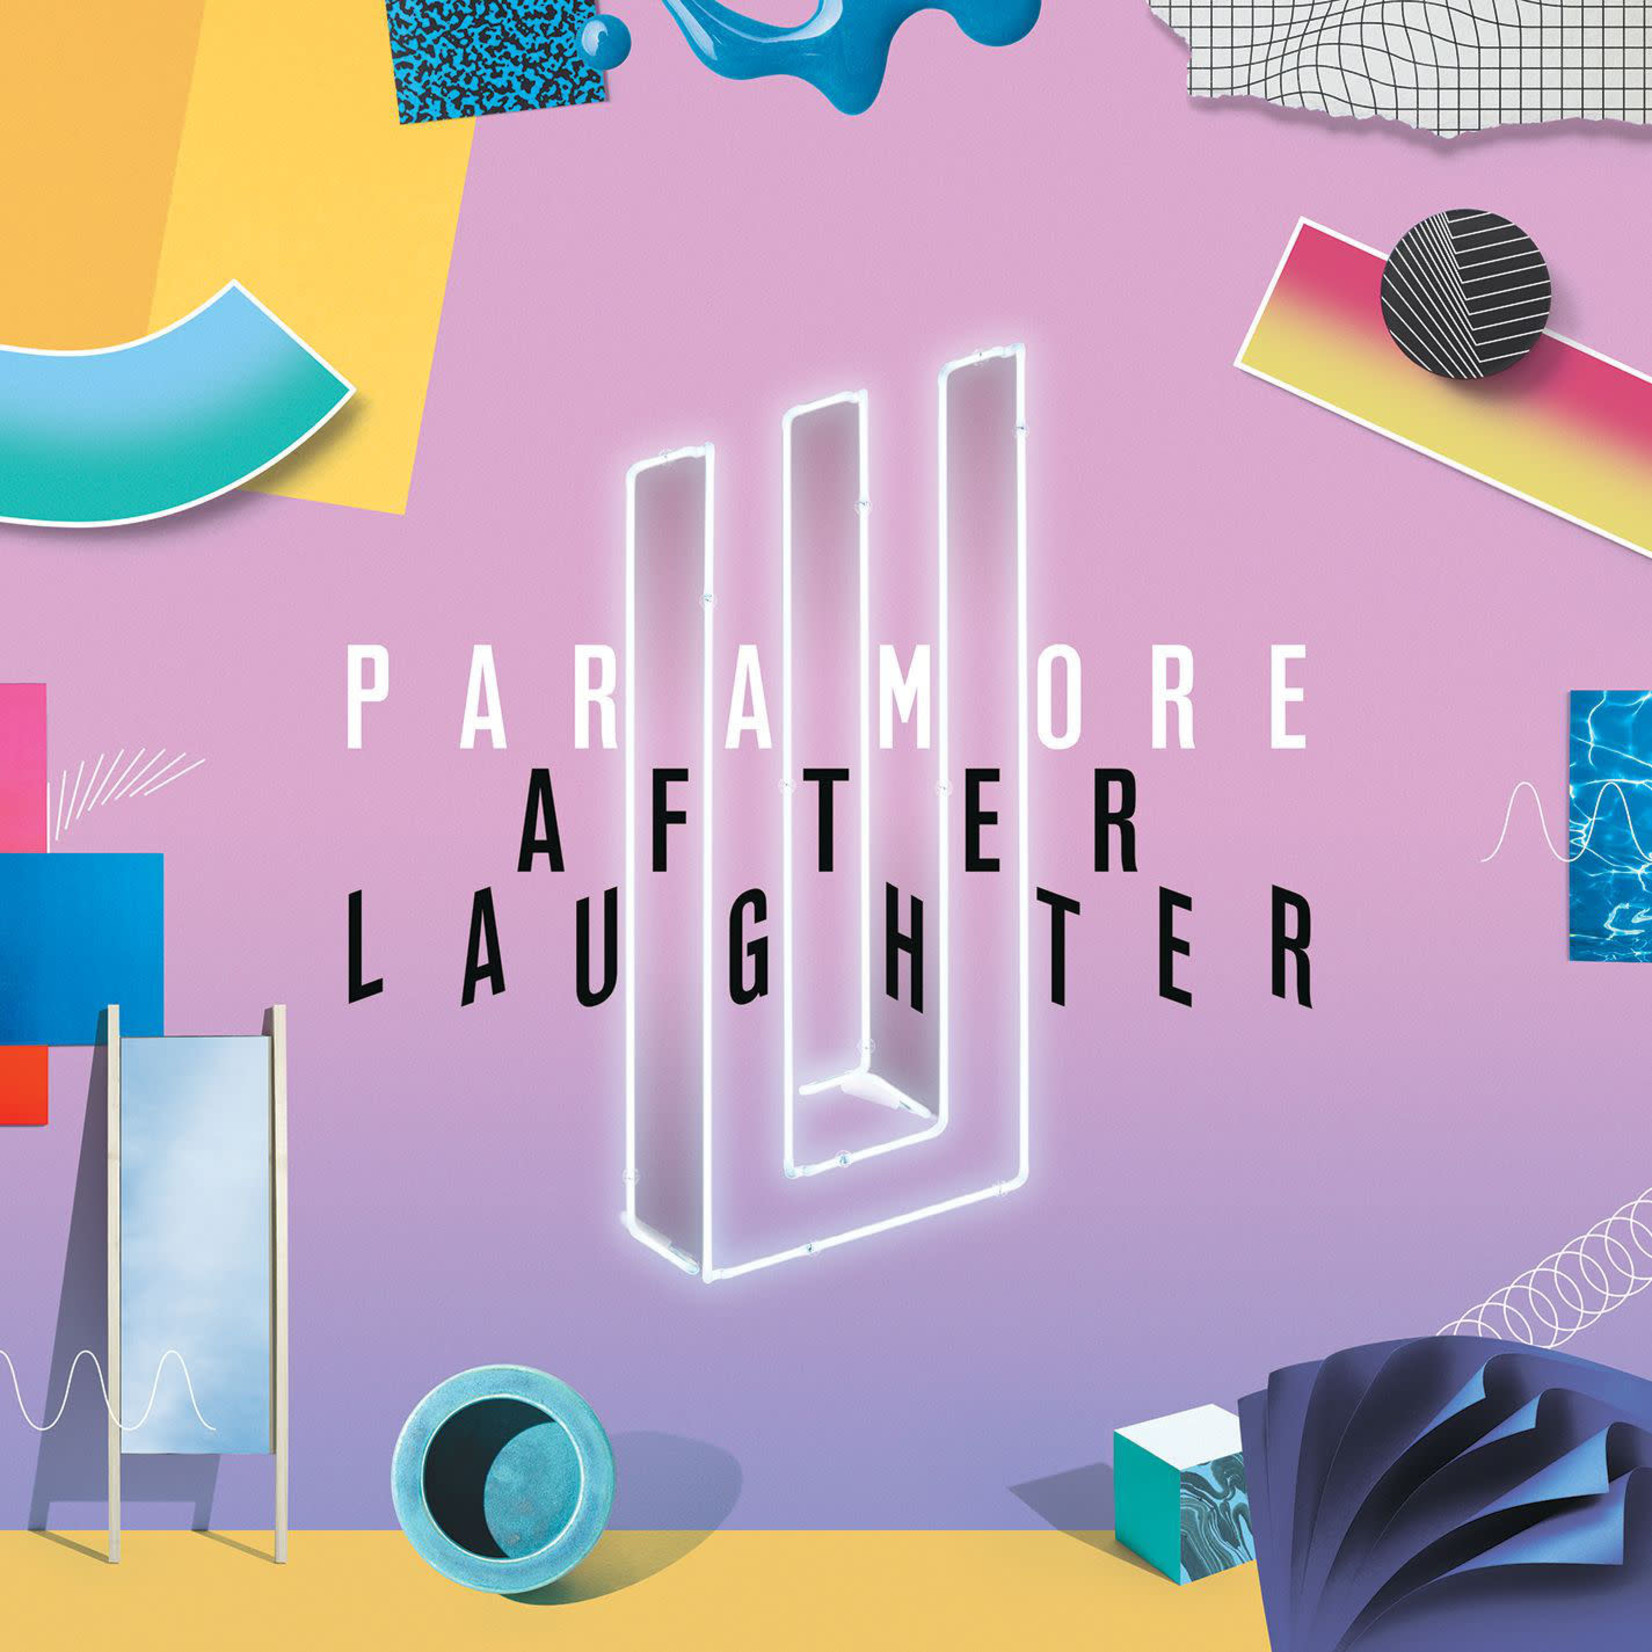 [New] Paramore: After Laughter